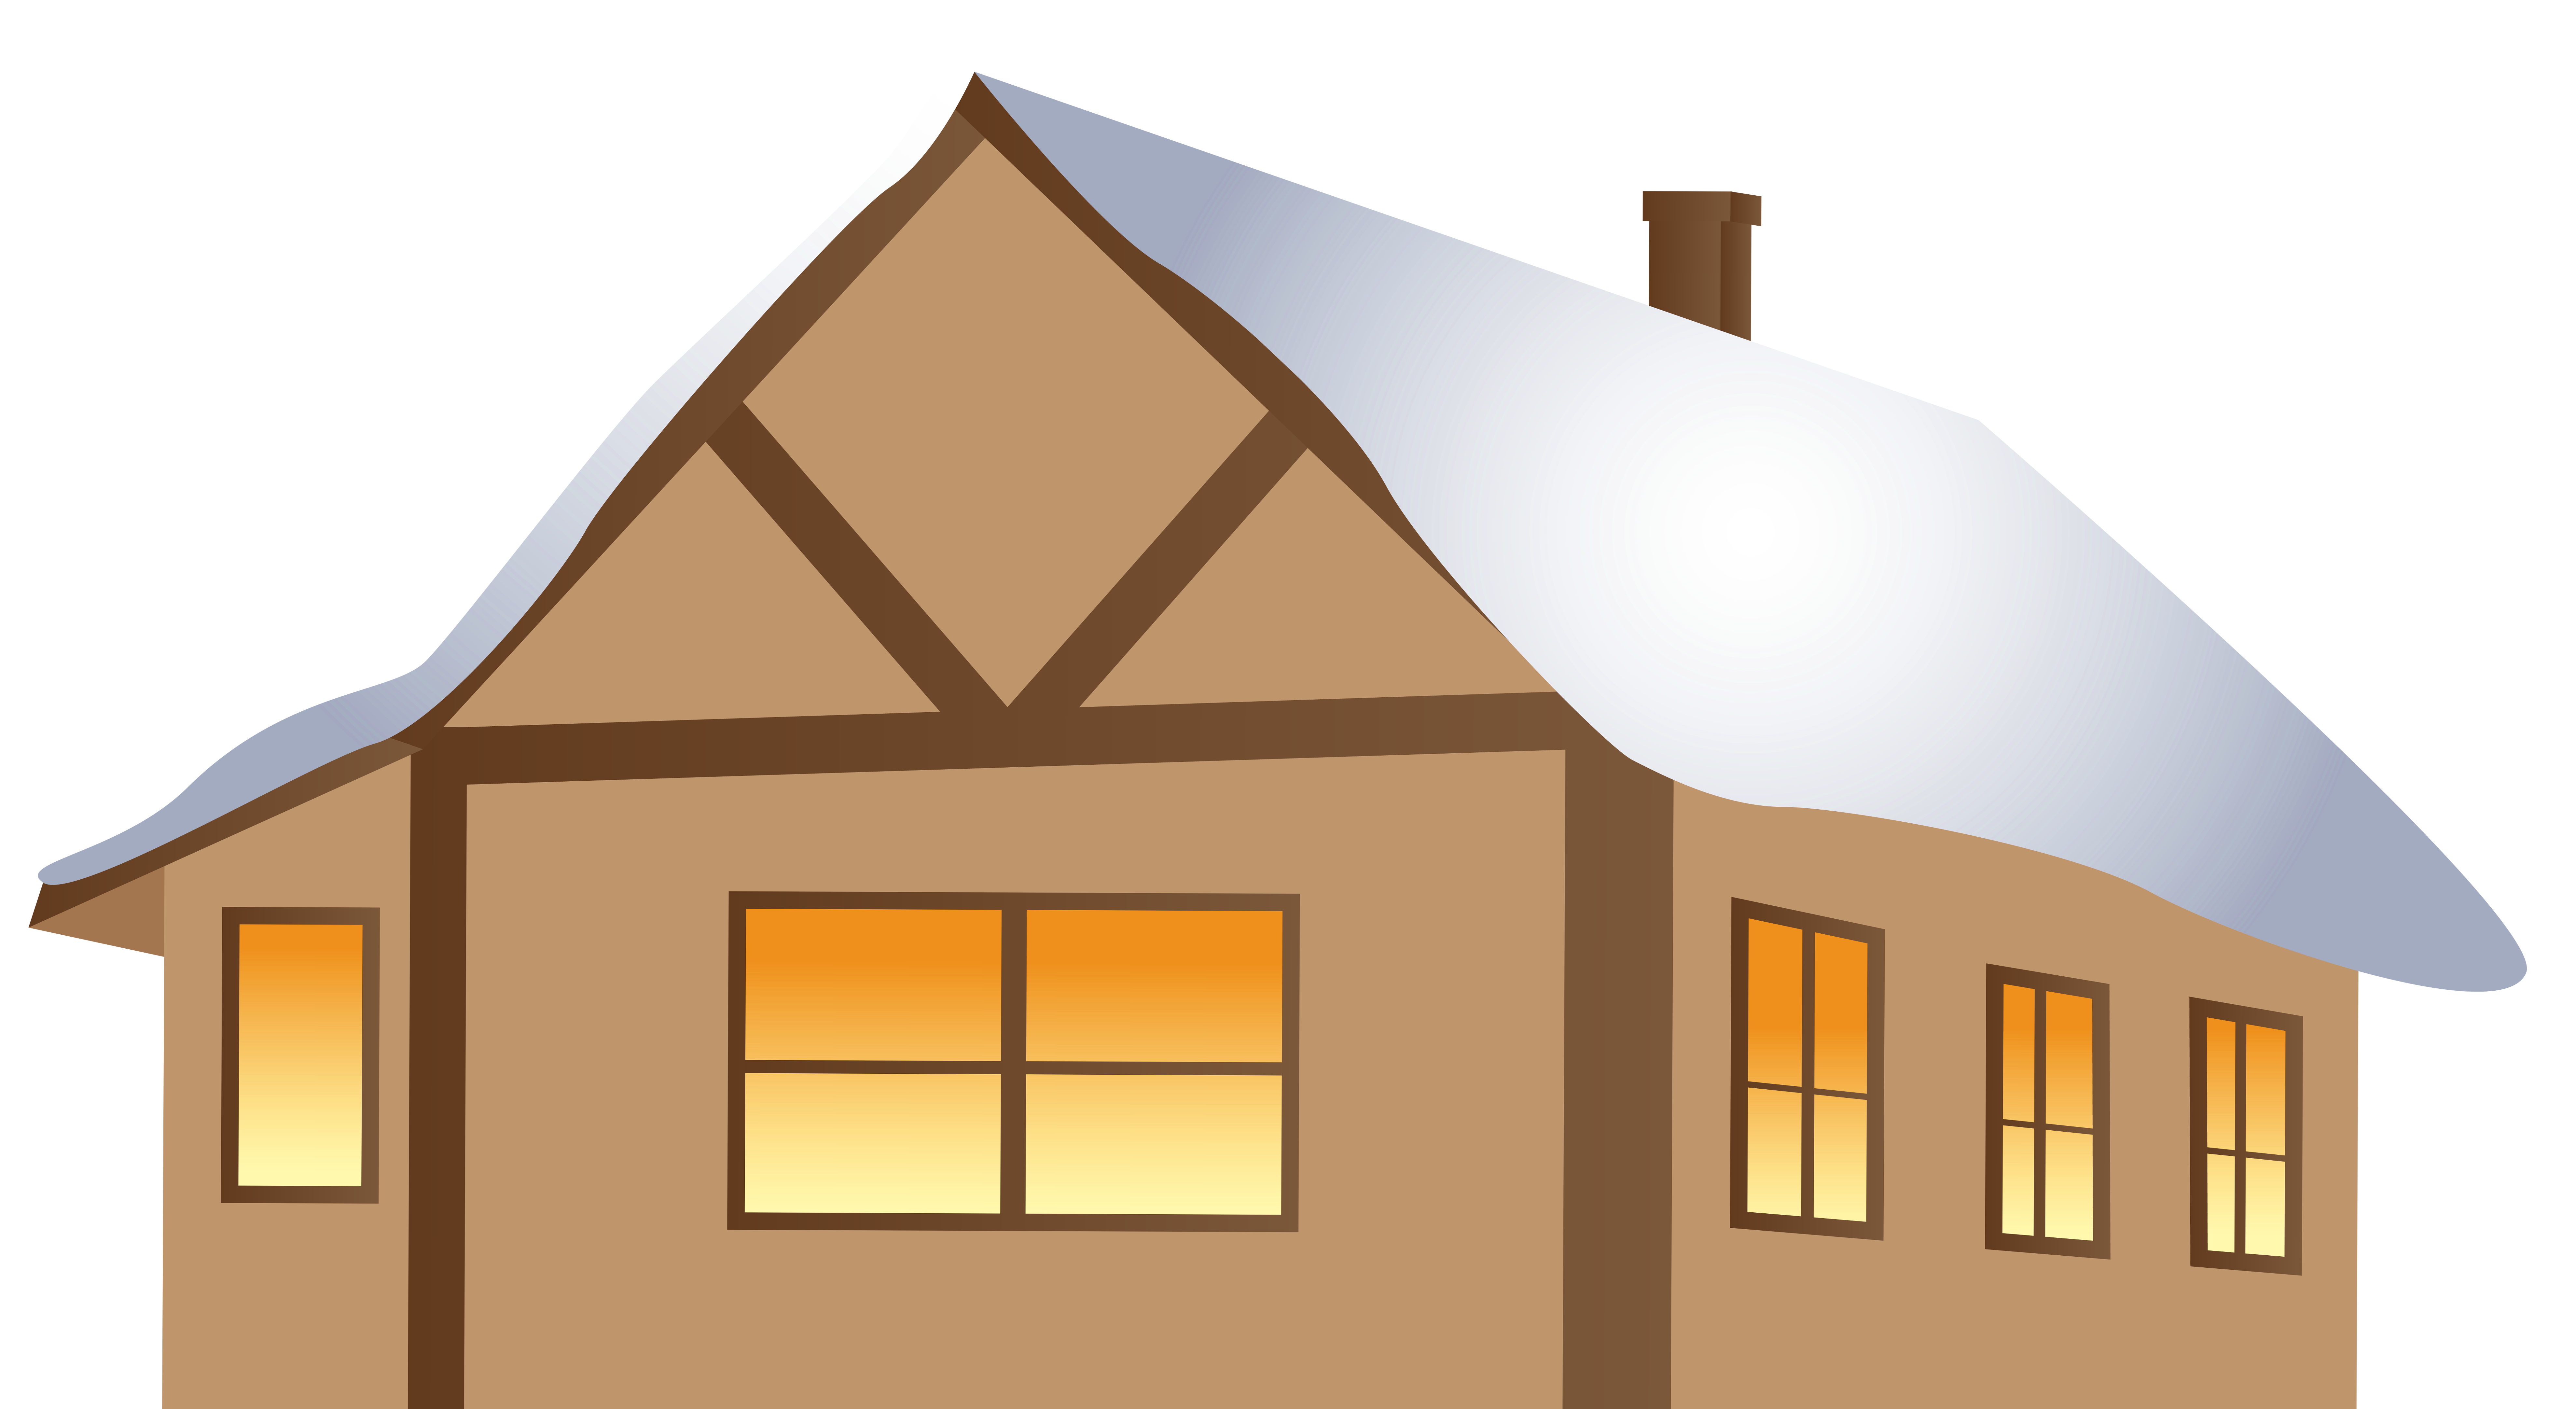 House siding clipart graphic royalty free library Winter Brown House PNG Clipart Image | Gallery Yopriceville - High ... graphic royalty free library